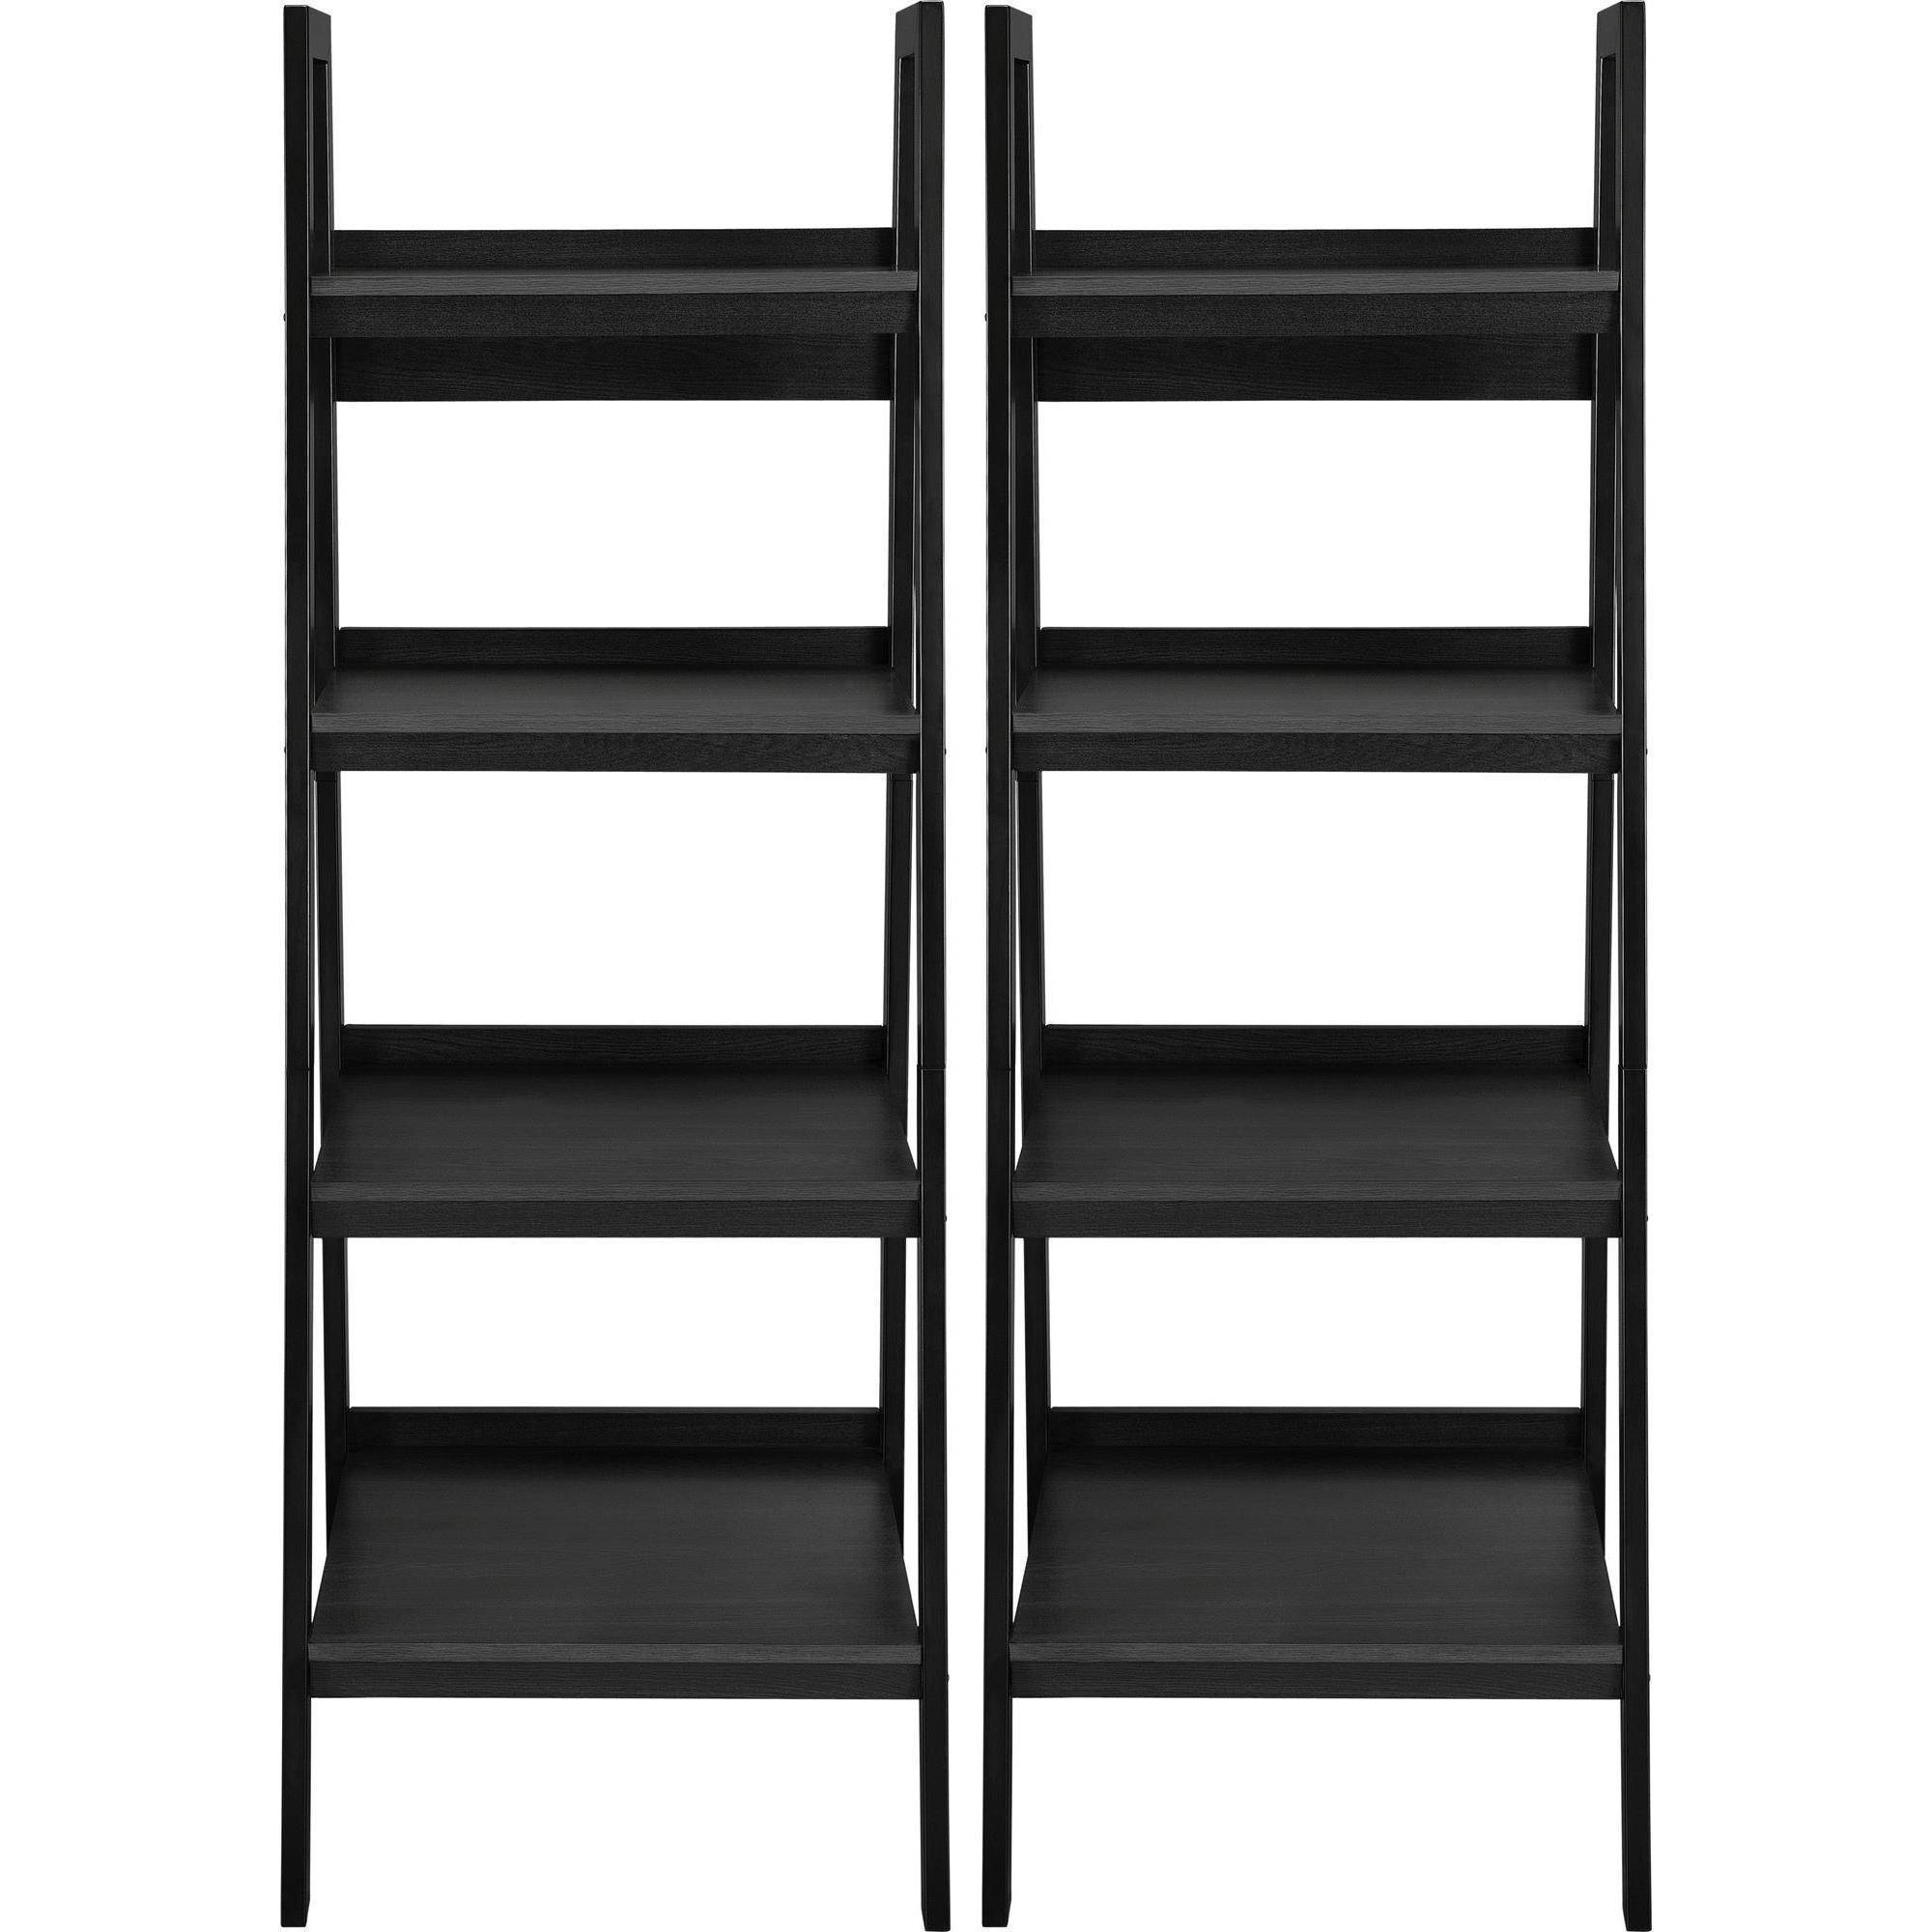 Aluminum Bookcase Altra Metal Ladder Bookcase Set Of 2 Black Shelves Shelf